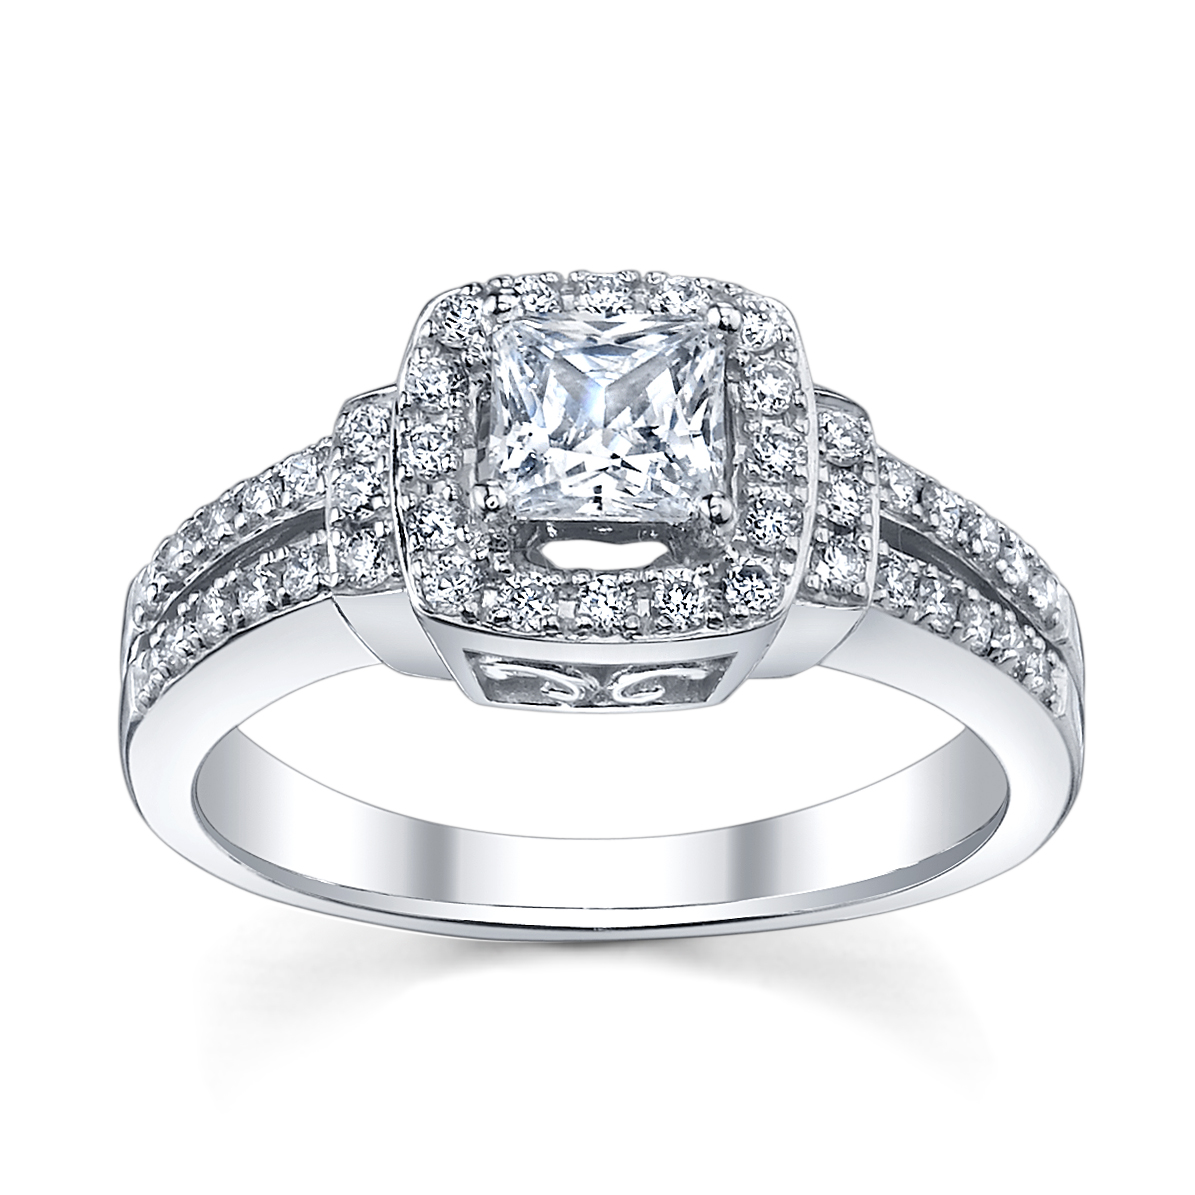 6 Princess Cut Engagement Rings She ll Love Robbins Brothers Blog